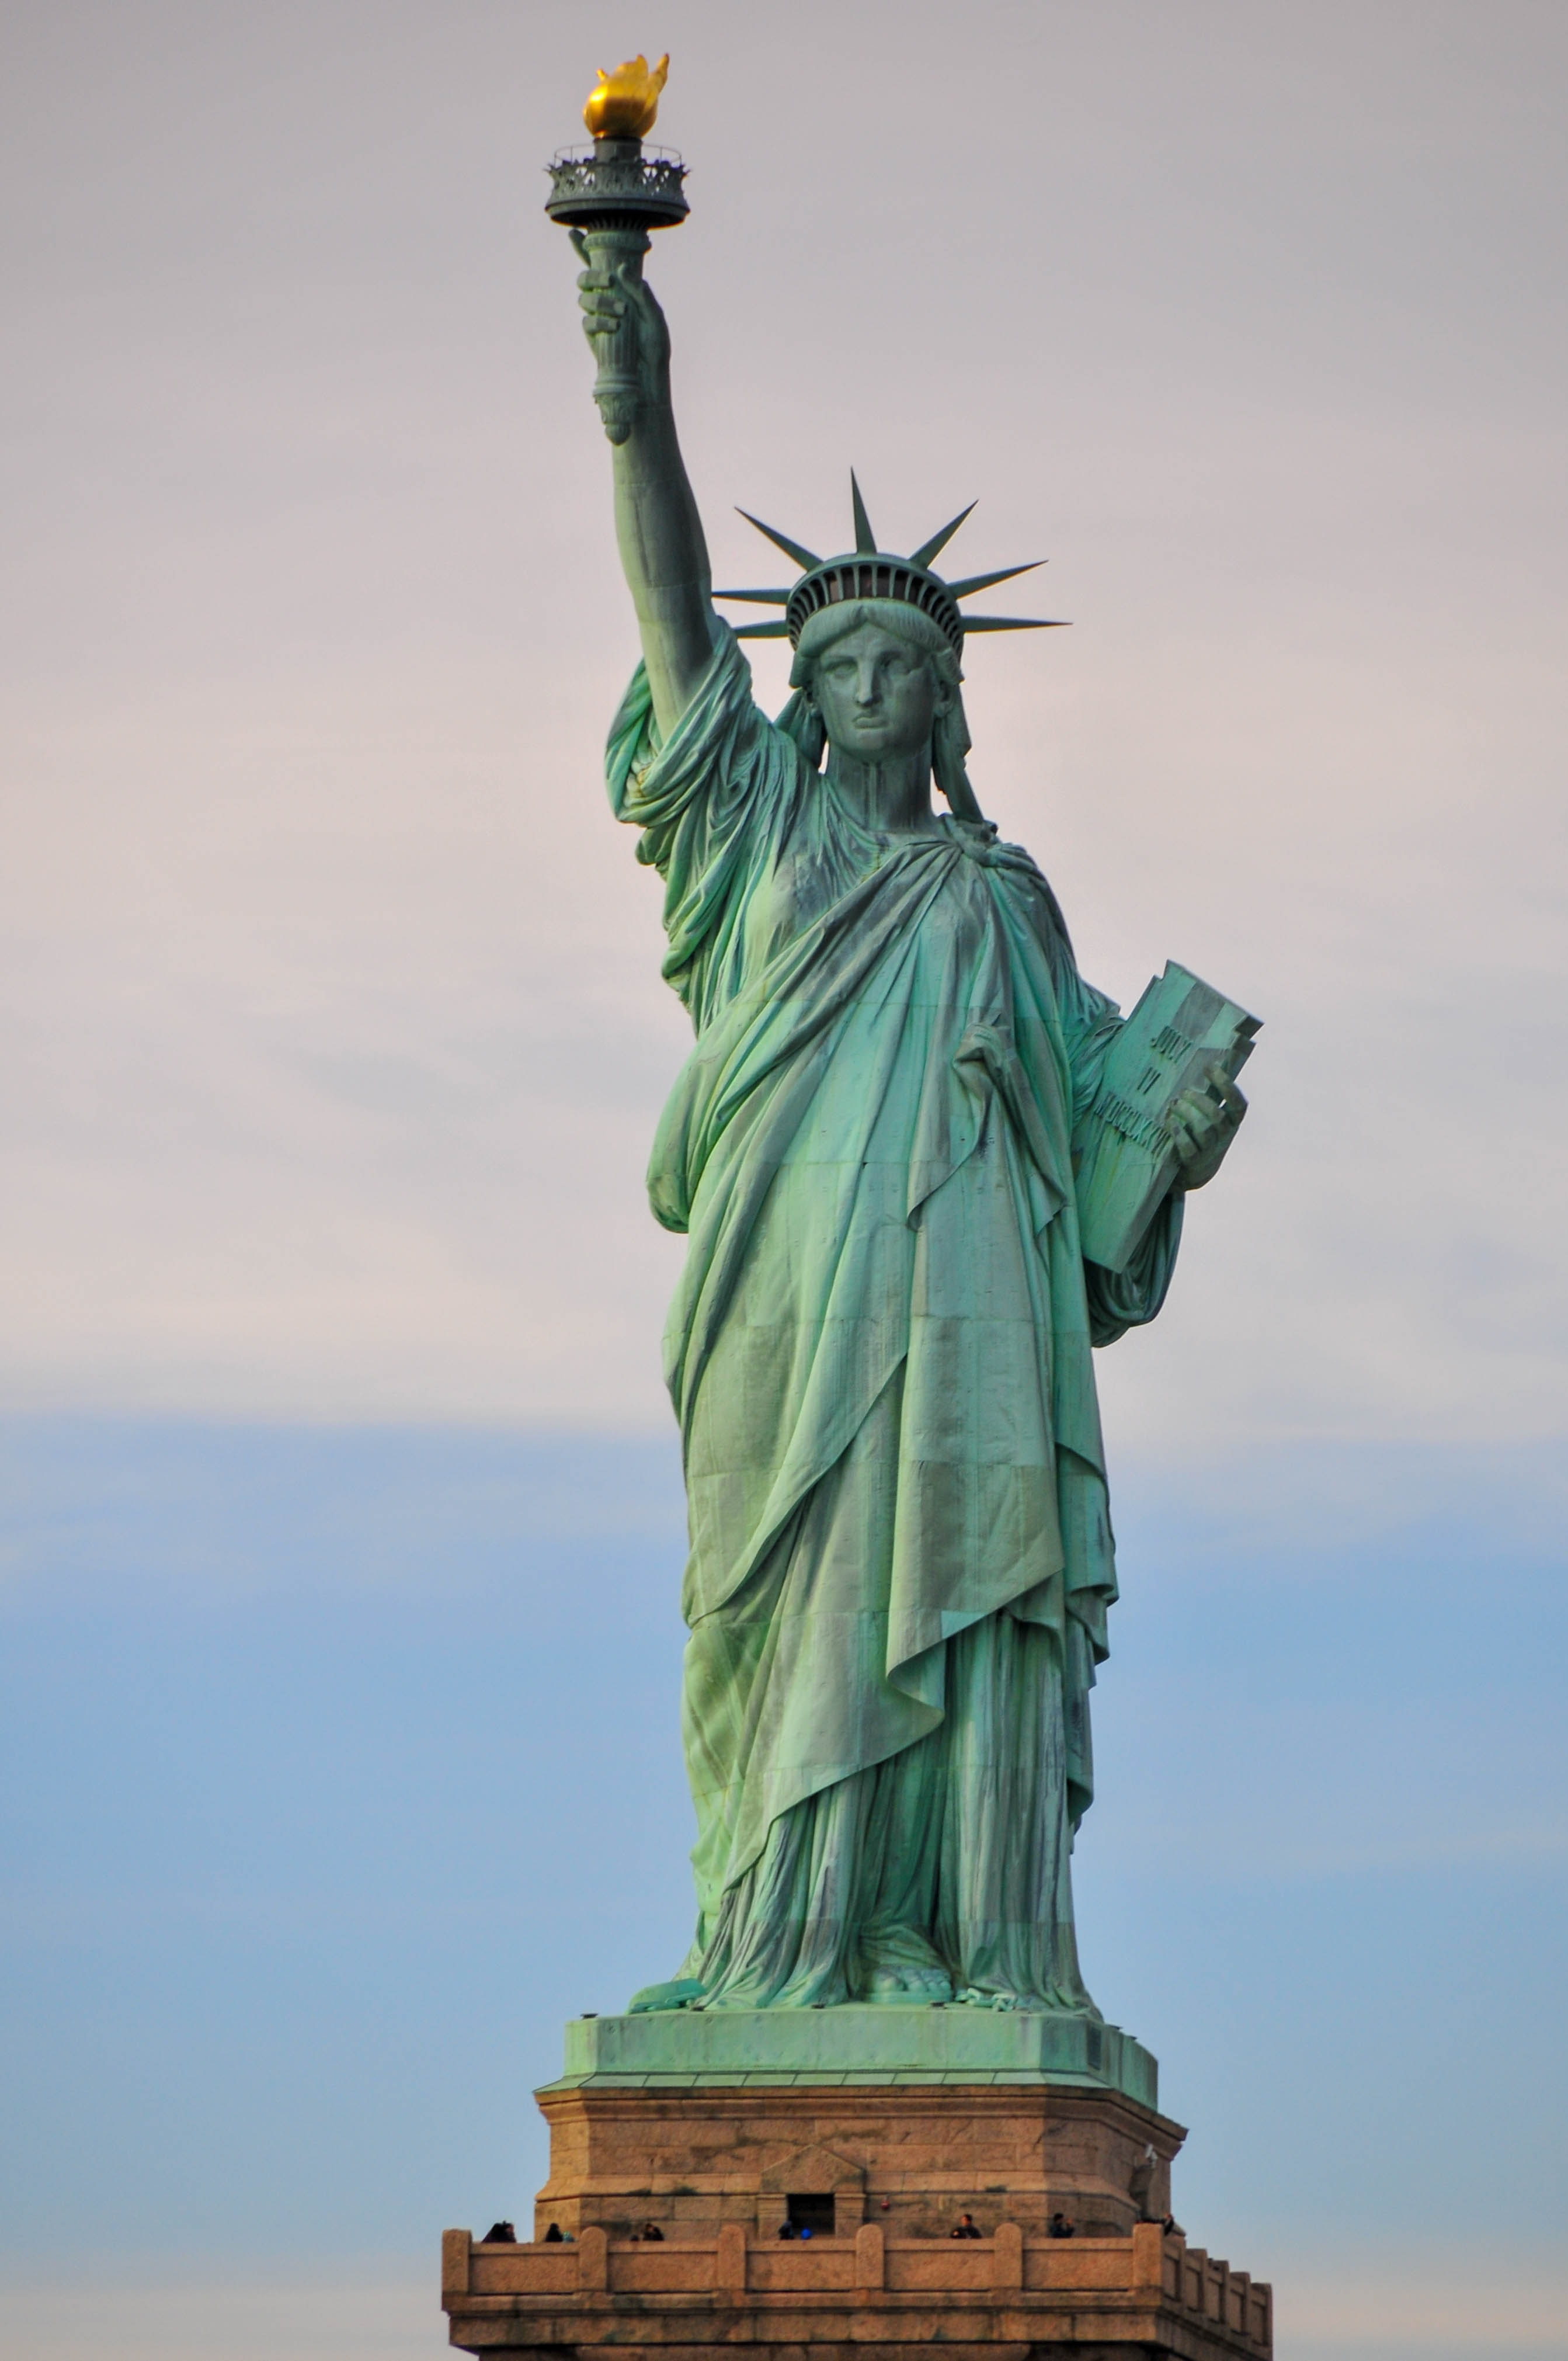 The Statue of Liberty - Facts, Pictures and